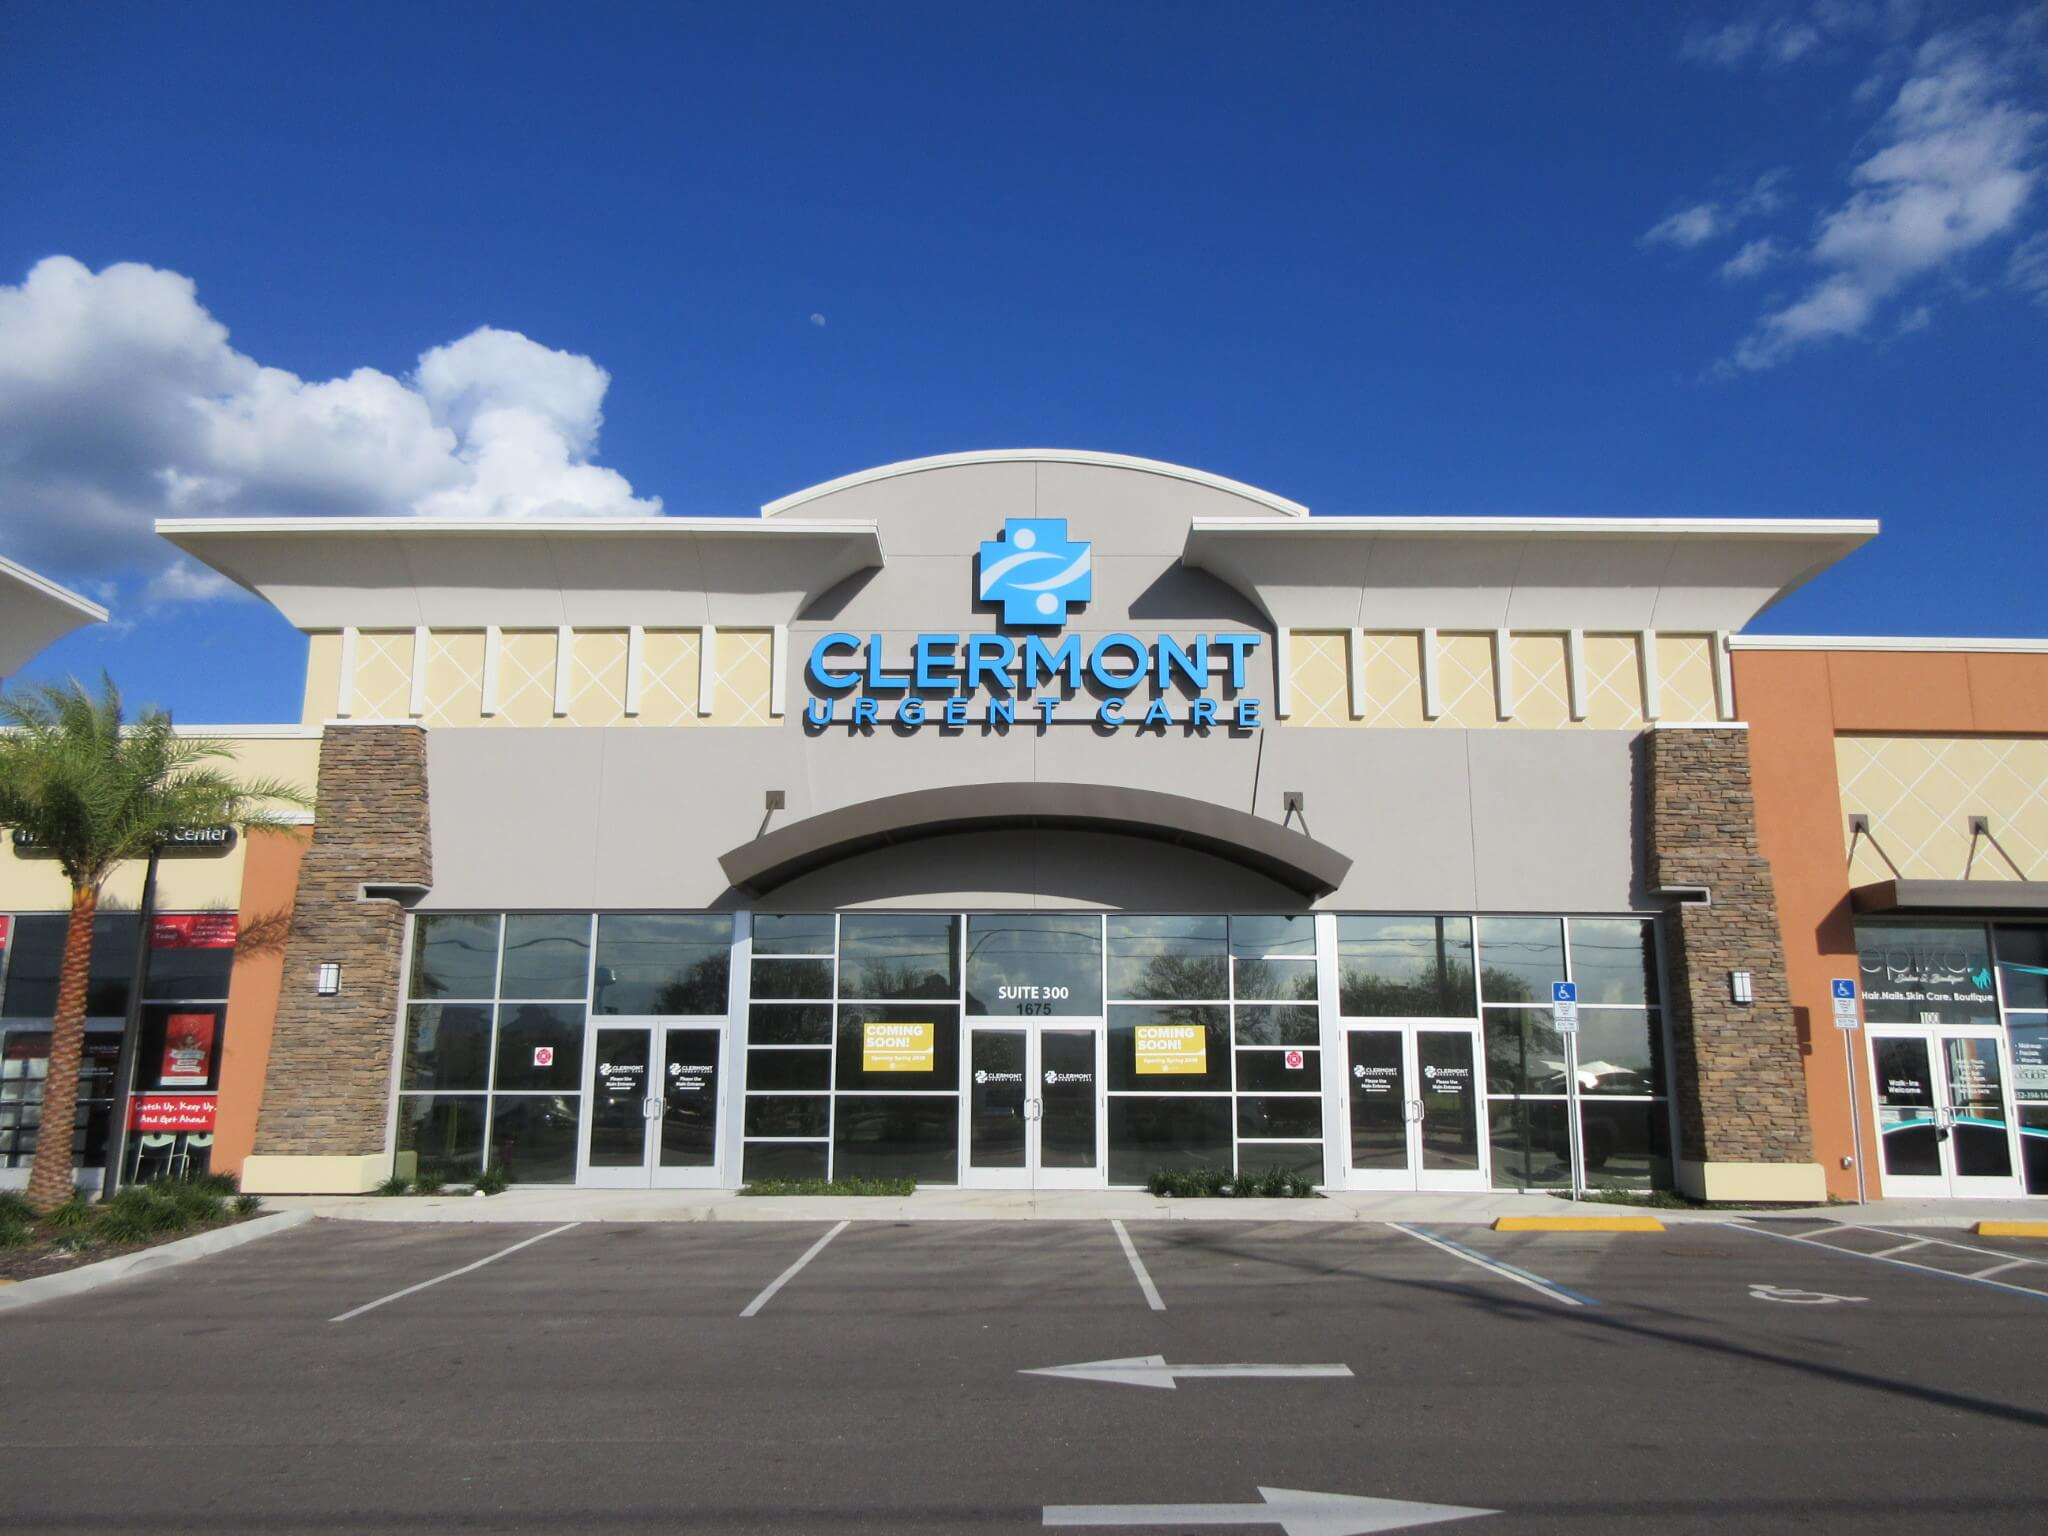 Exterior shot of Clermont Urgent Care on a sunny day